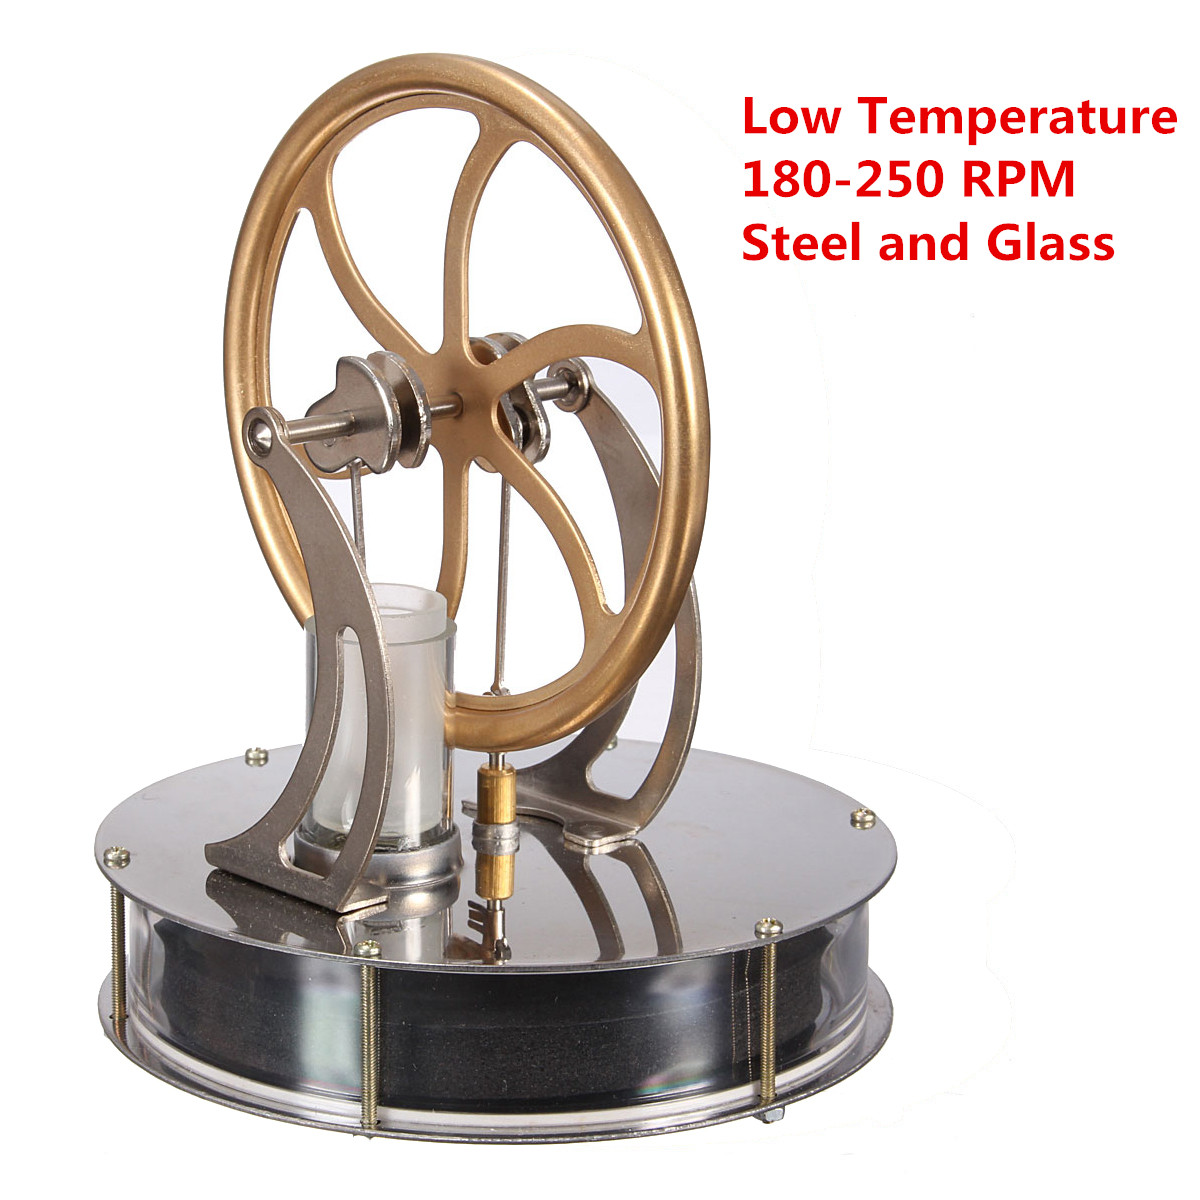 Low Temperature Stirling Engine Motor Model Cool No Steam Heat Education Toy Science Experiment Kit все цены